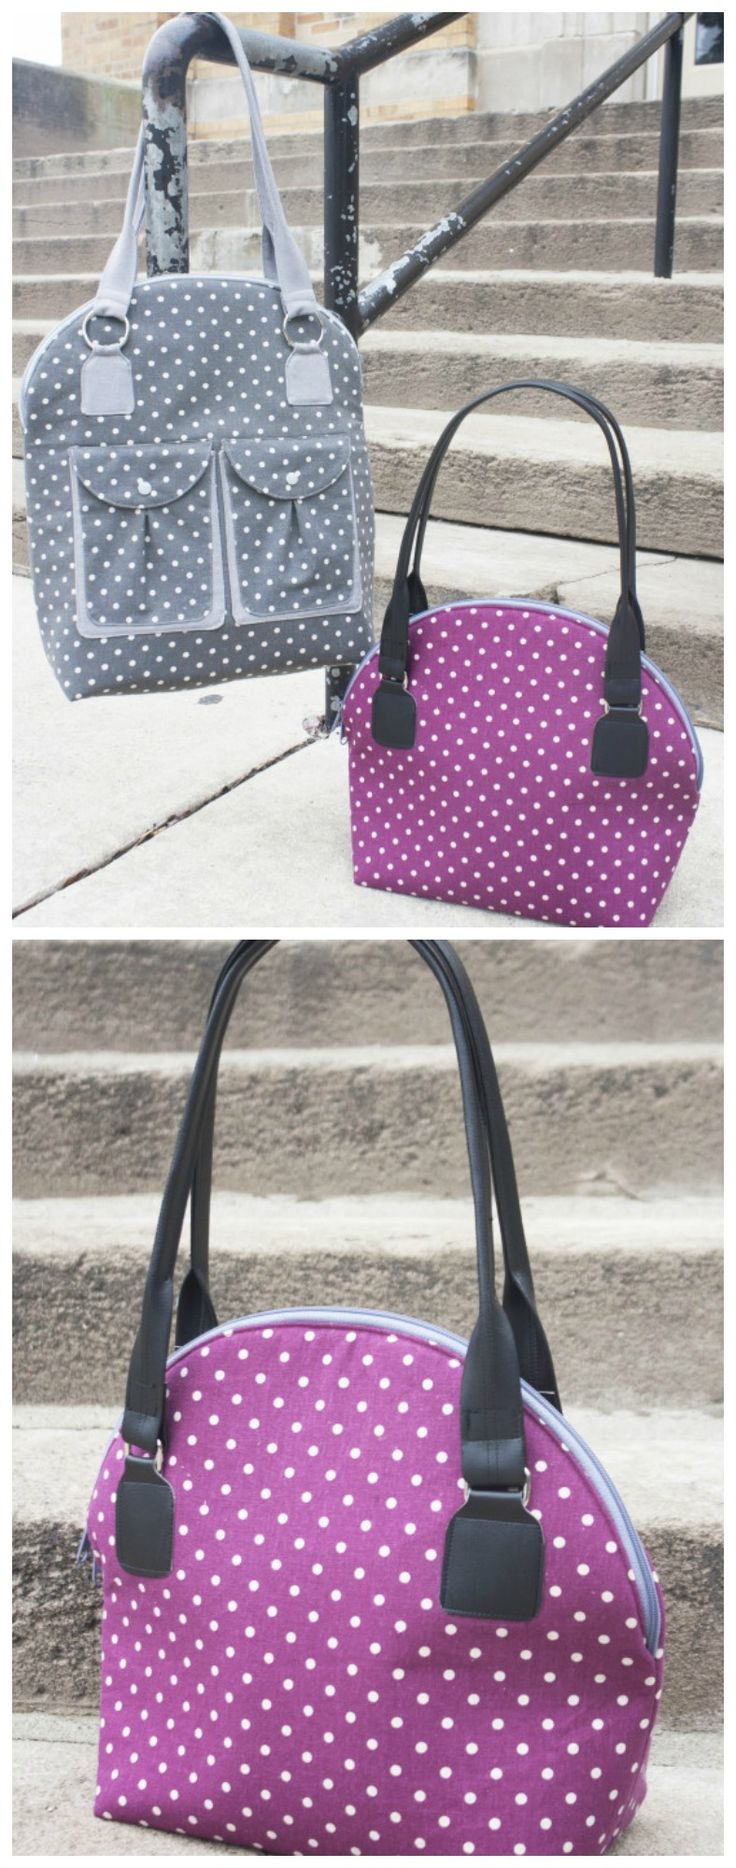 Byebye Love bag sewing pattern. Pattern comes in two sizes for a regular or taller bag. I've made both and they are both great. Love the pockets on the larger one and the curved zipper is actually easy to sew!